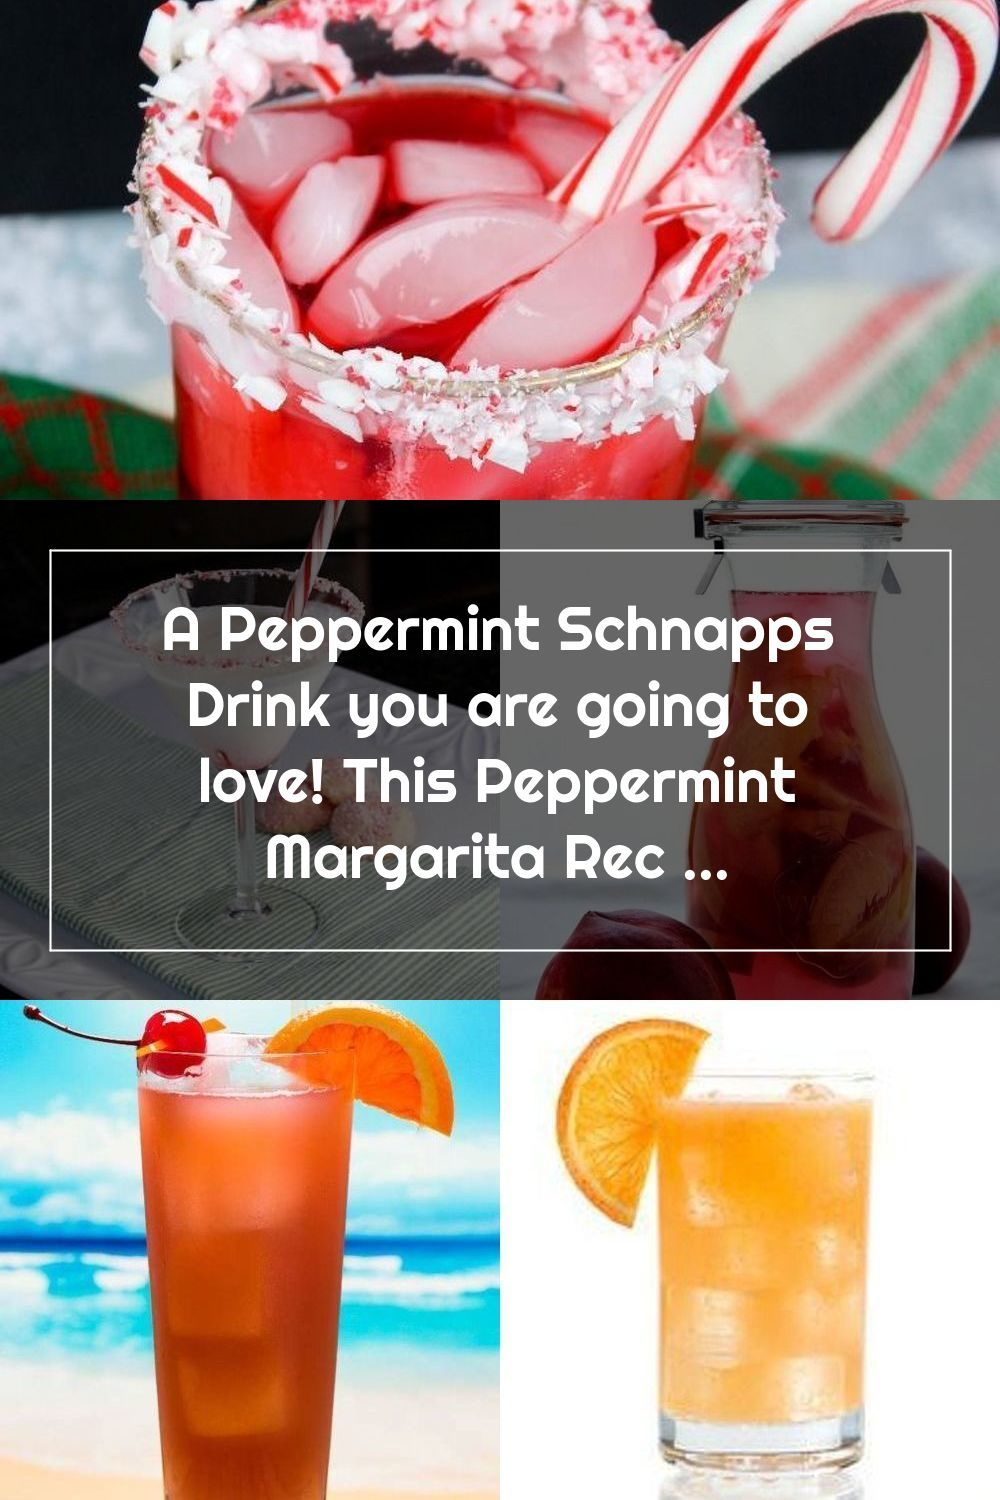 A Peppermint Schnapps Drink You Are Going To Love This Peppermint Margarit In 2020 Schnapps Christmas Cocktails Recipes Drinks